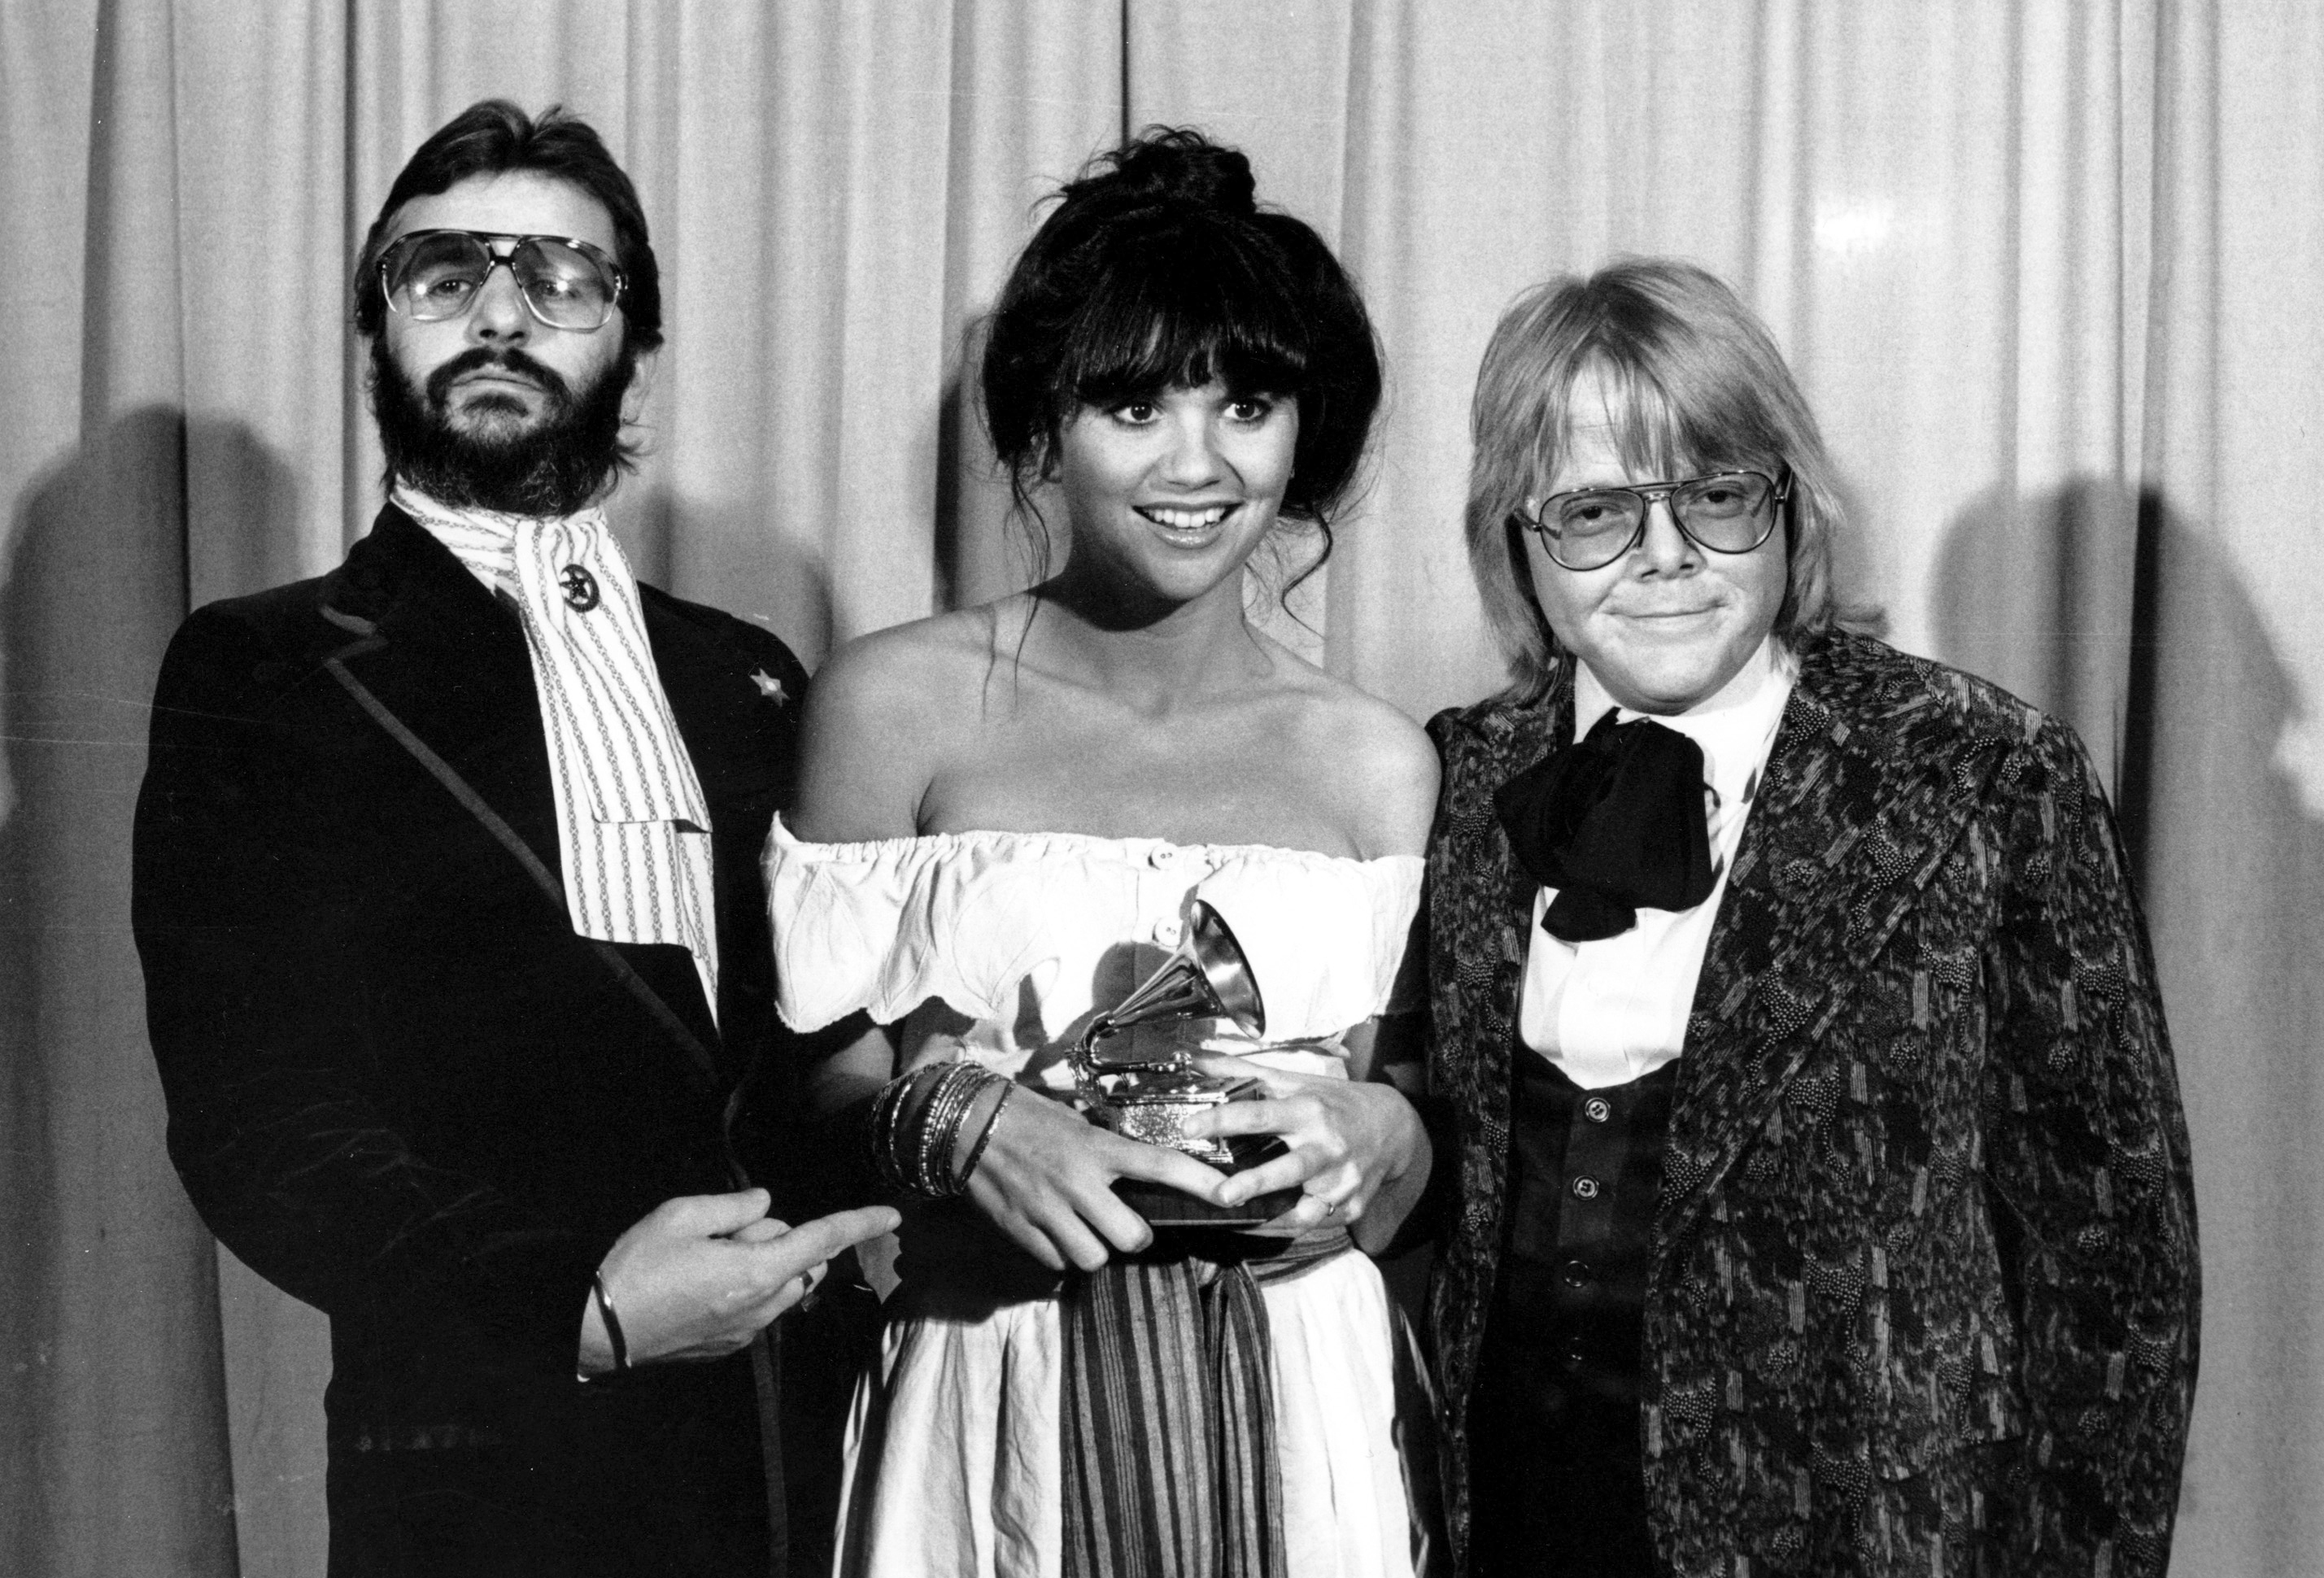 """SingerLinda Ronstadt is flanked by Ringo Starr  and Paul Williams after she was named best pop singer for her """"Hasten Down the Wind"""" at the 19th Annual Grammy Awards in Los Angeles in 1977."""